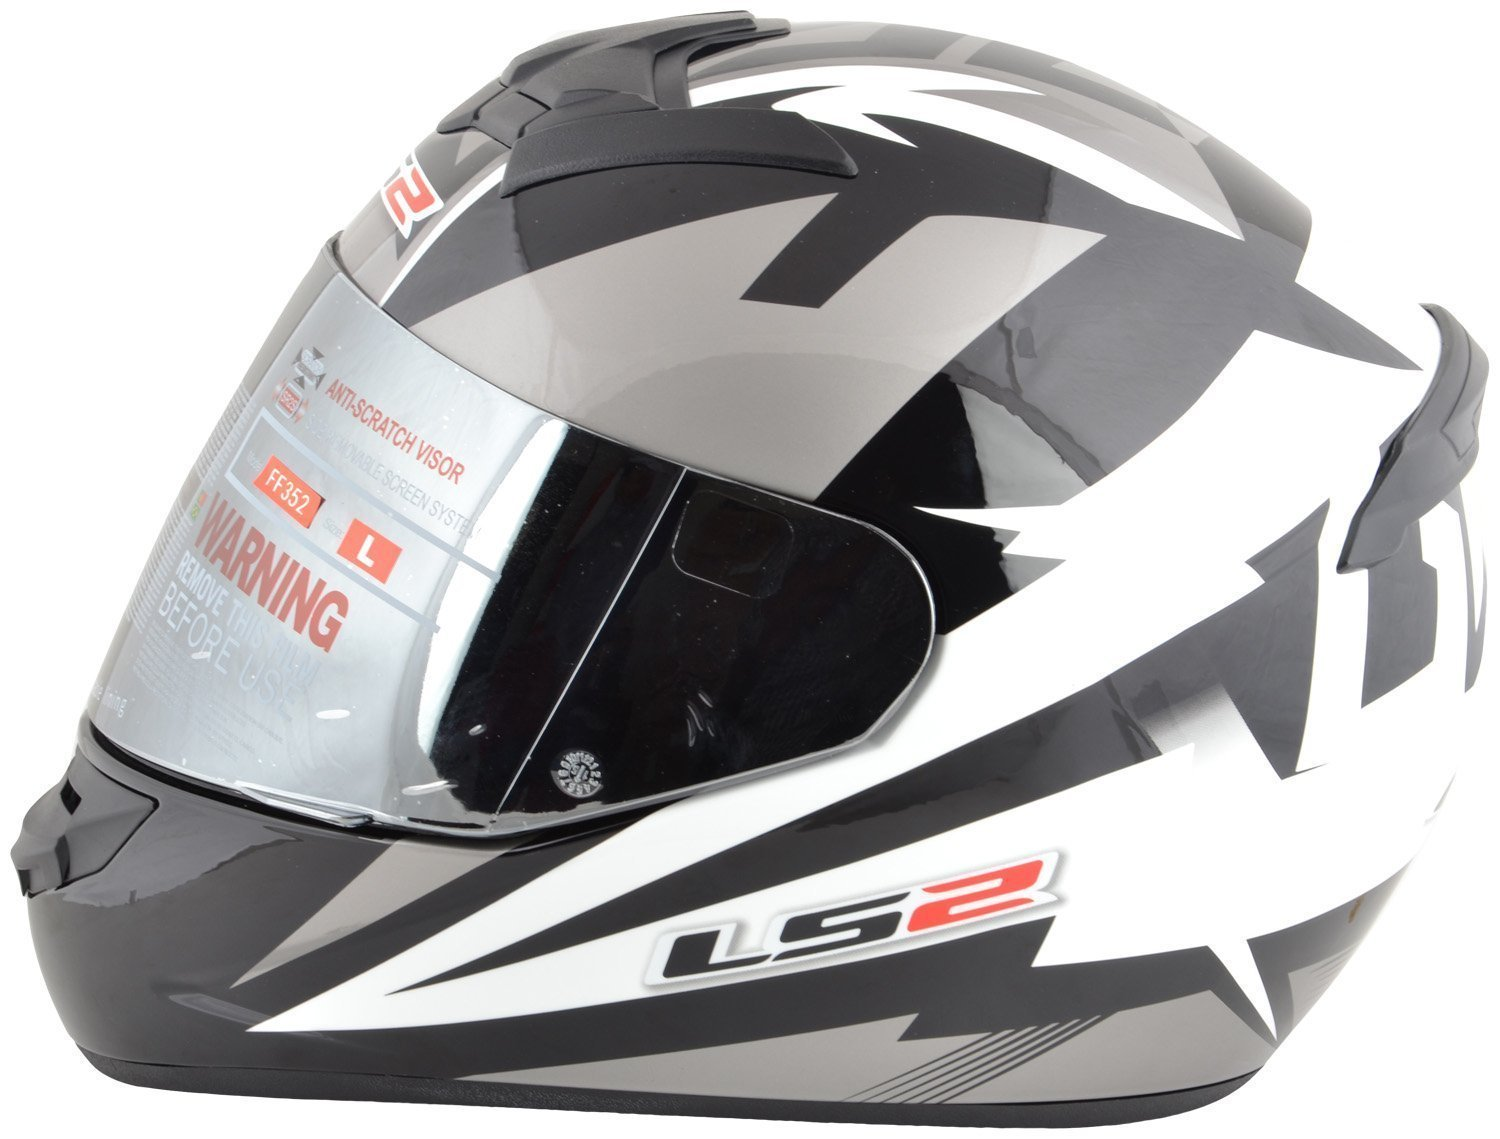 484a3bebc23 LS2 DYNO Full Face Helmets (White and Black, X-Large): Amazon.in: Car &  Motorbike